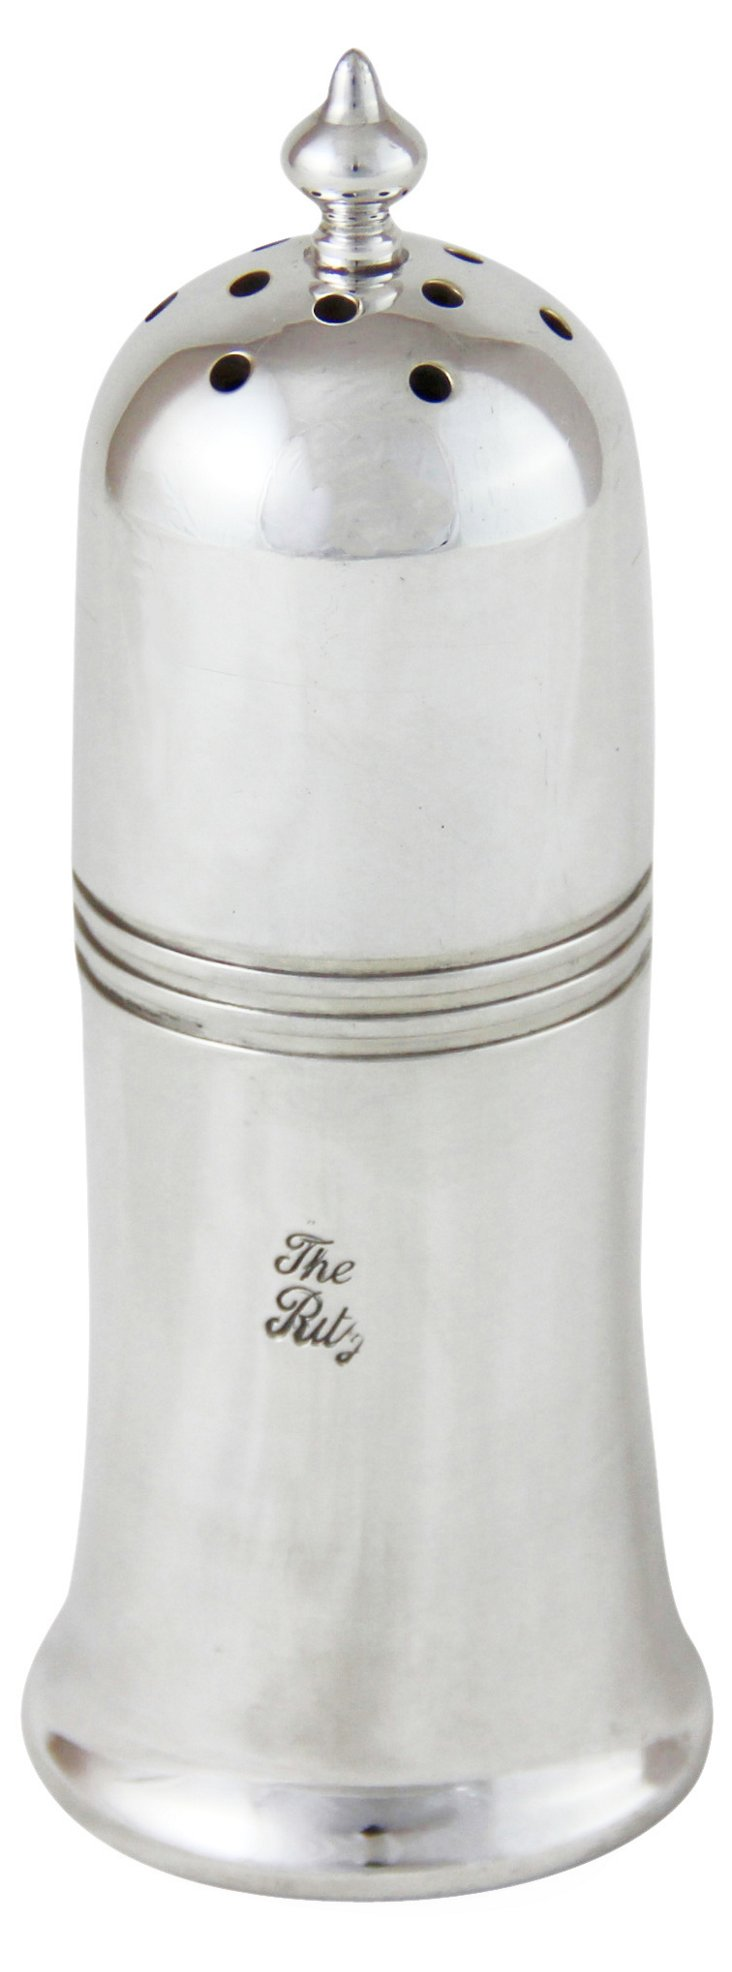 """The Ritz"" Silver-Plated Sugar Shaker"